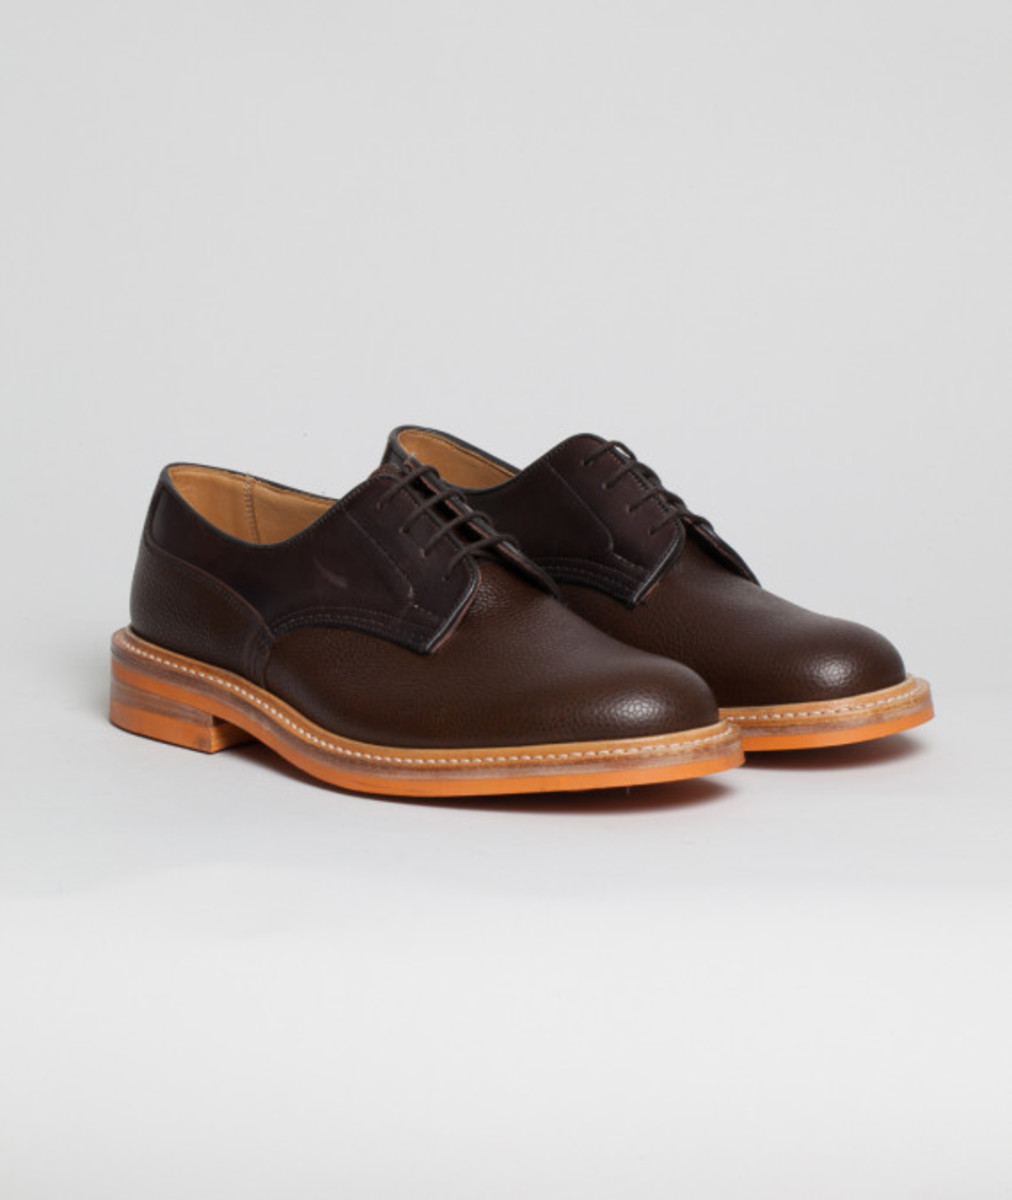 norse-projects-trickers-woodstock-02